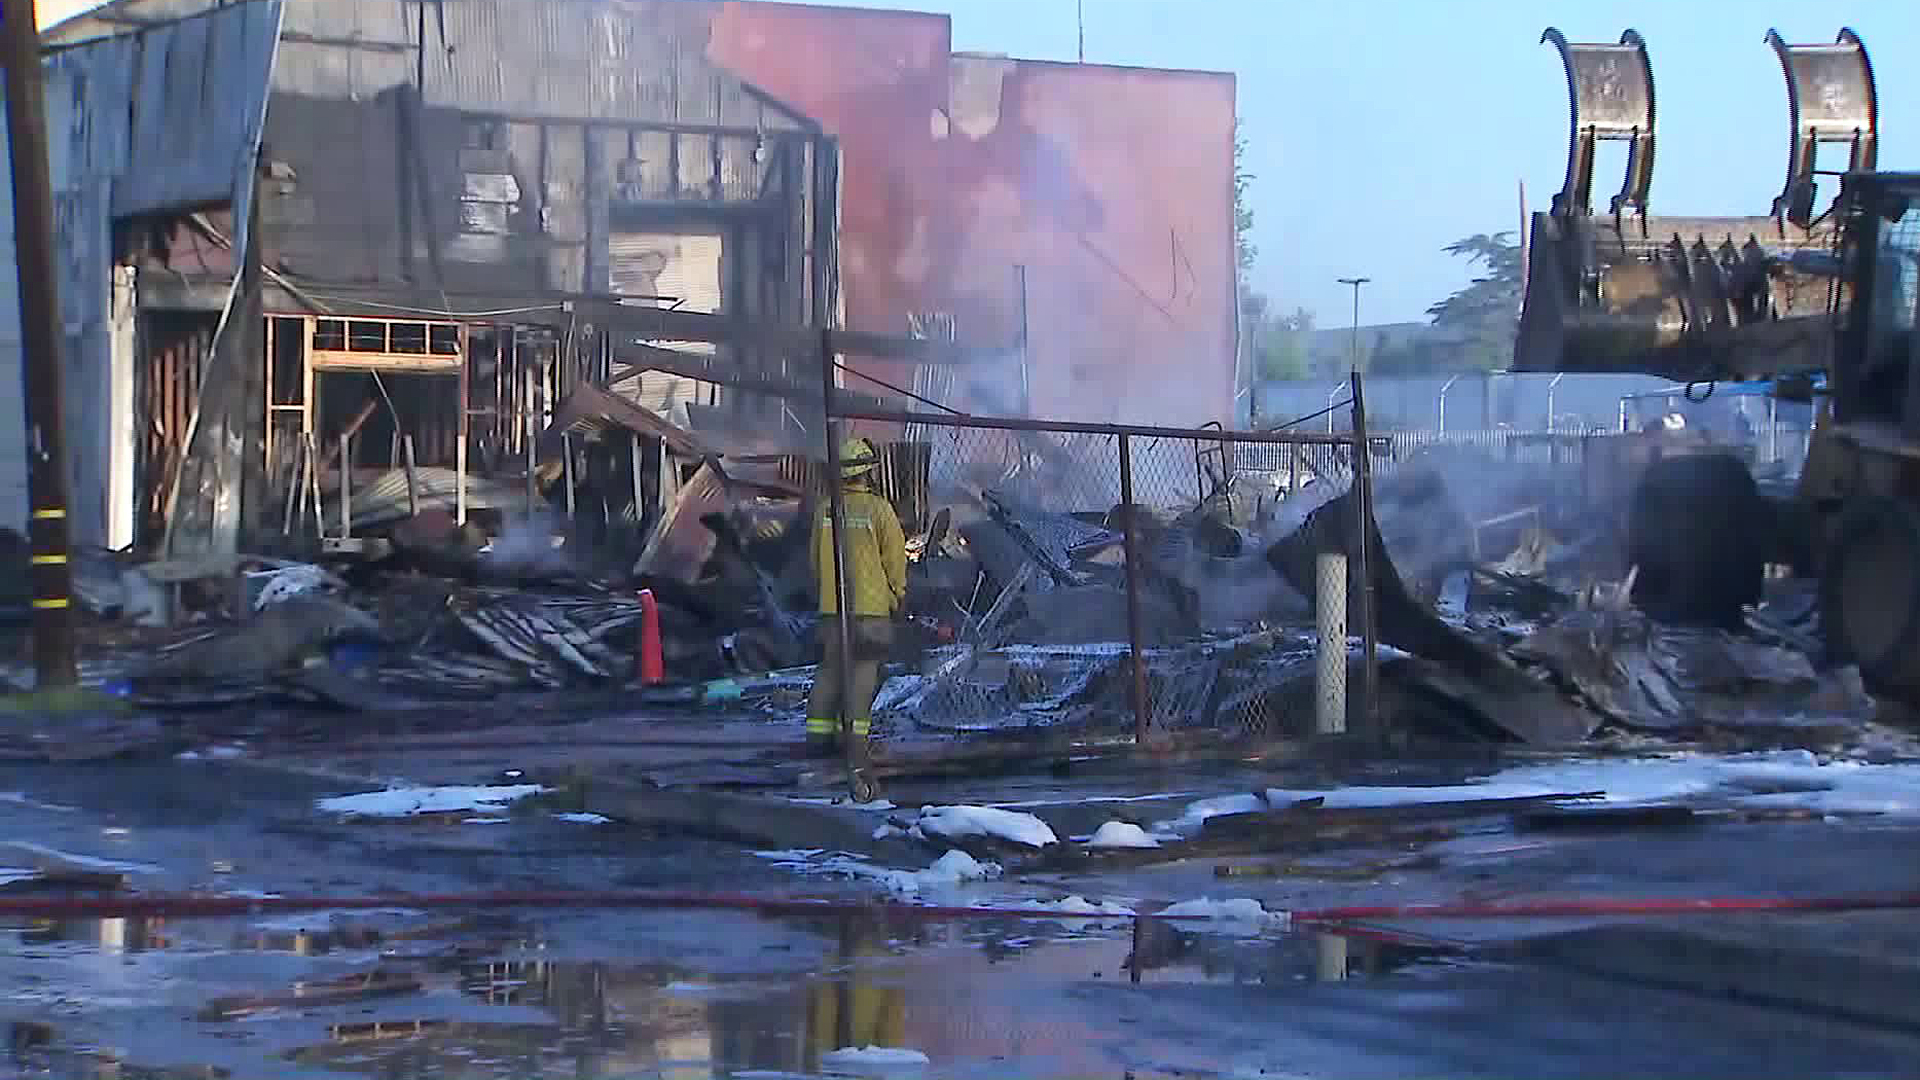 Crews look for hot spots following commercial building blaze in Ontario on Aug. 16, 2019. (Credit: KTLA)